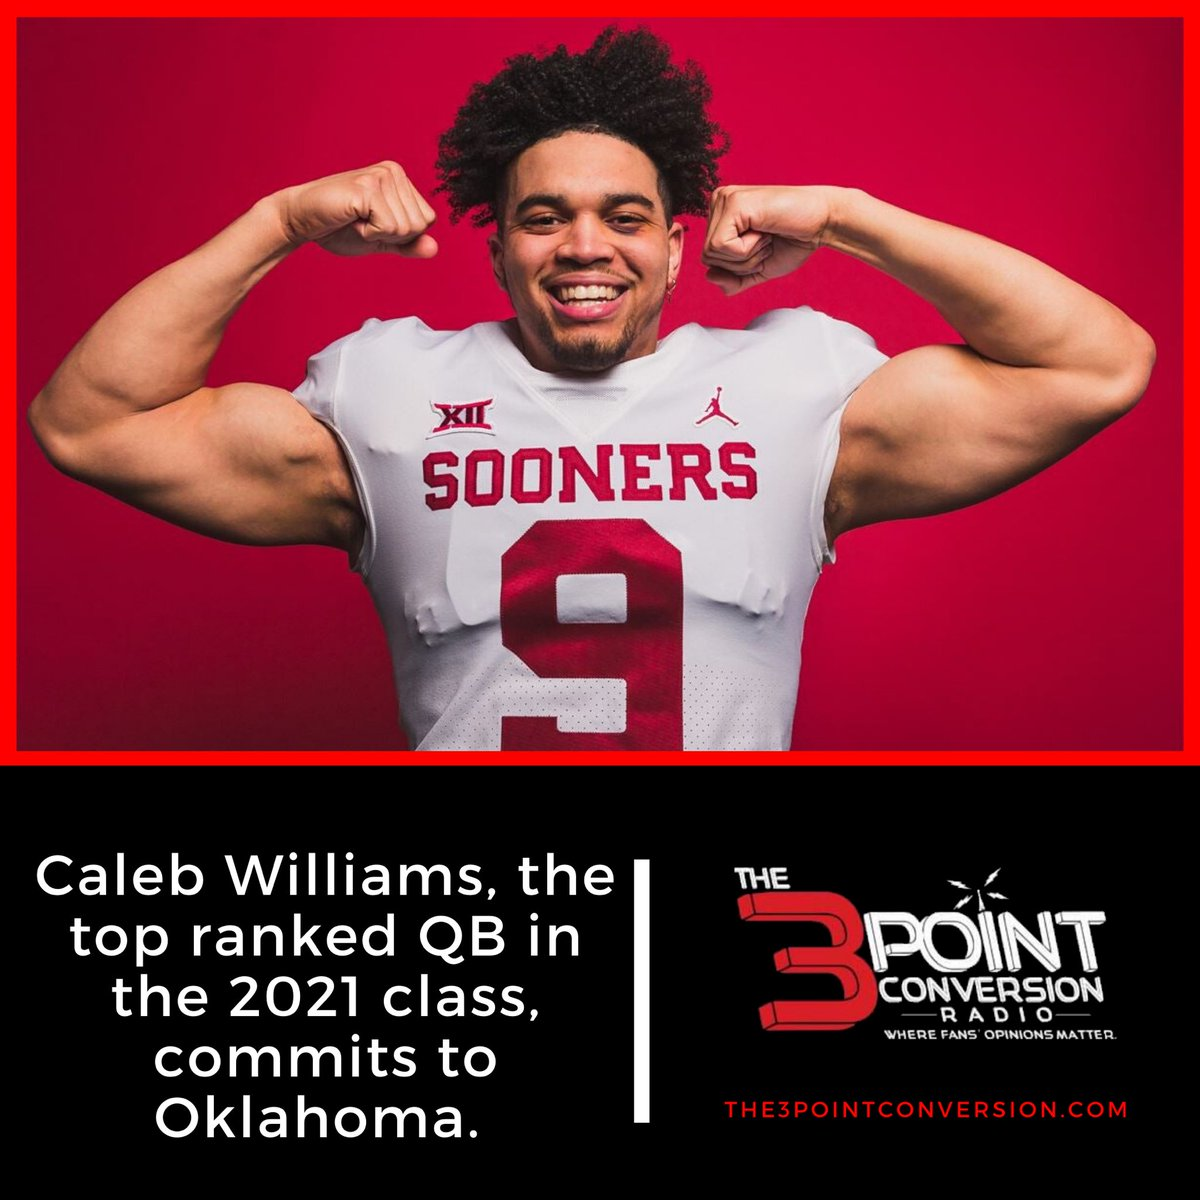 Caleb Williams, the top ranked QB in the 2021 class, commits to Oklahoma. Williams chose the Sooners over LSU, Maryland and Buffalo.   #CollegeFootball | #BoomerSooner | #3ptcnvrsnpic.twitter.com/NbxcZkAZqj